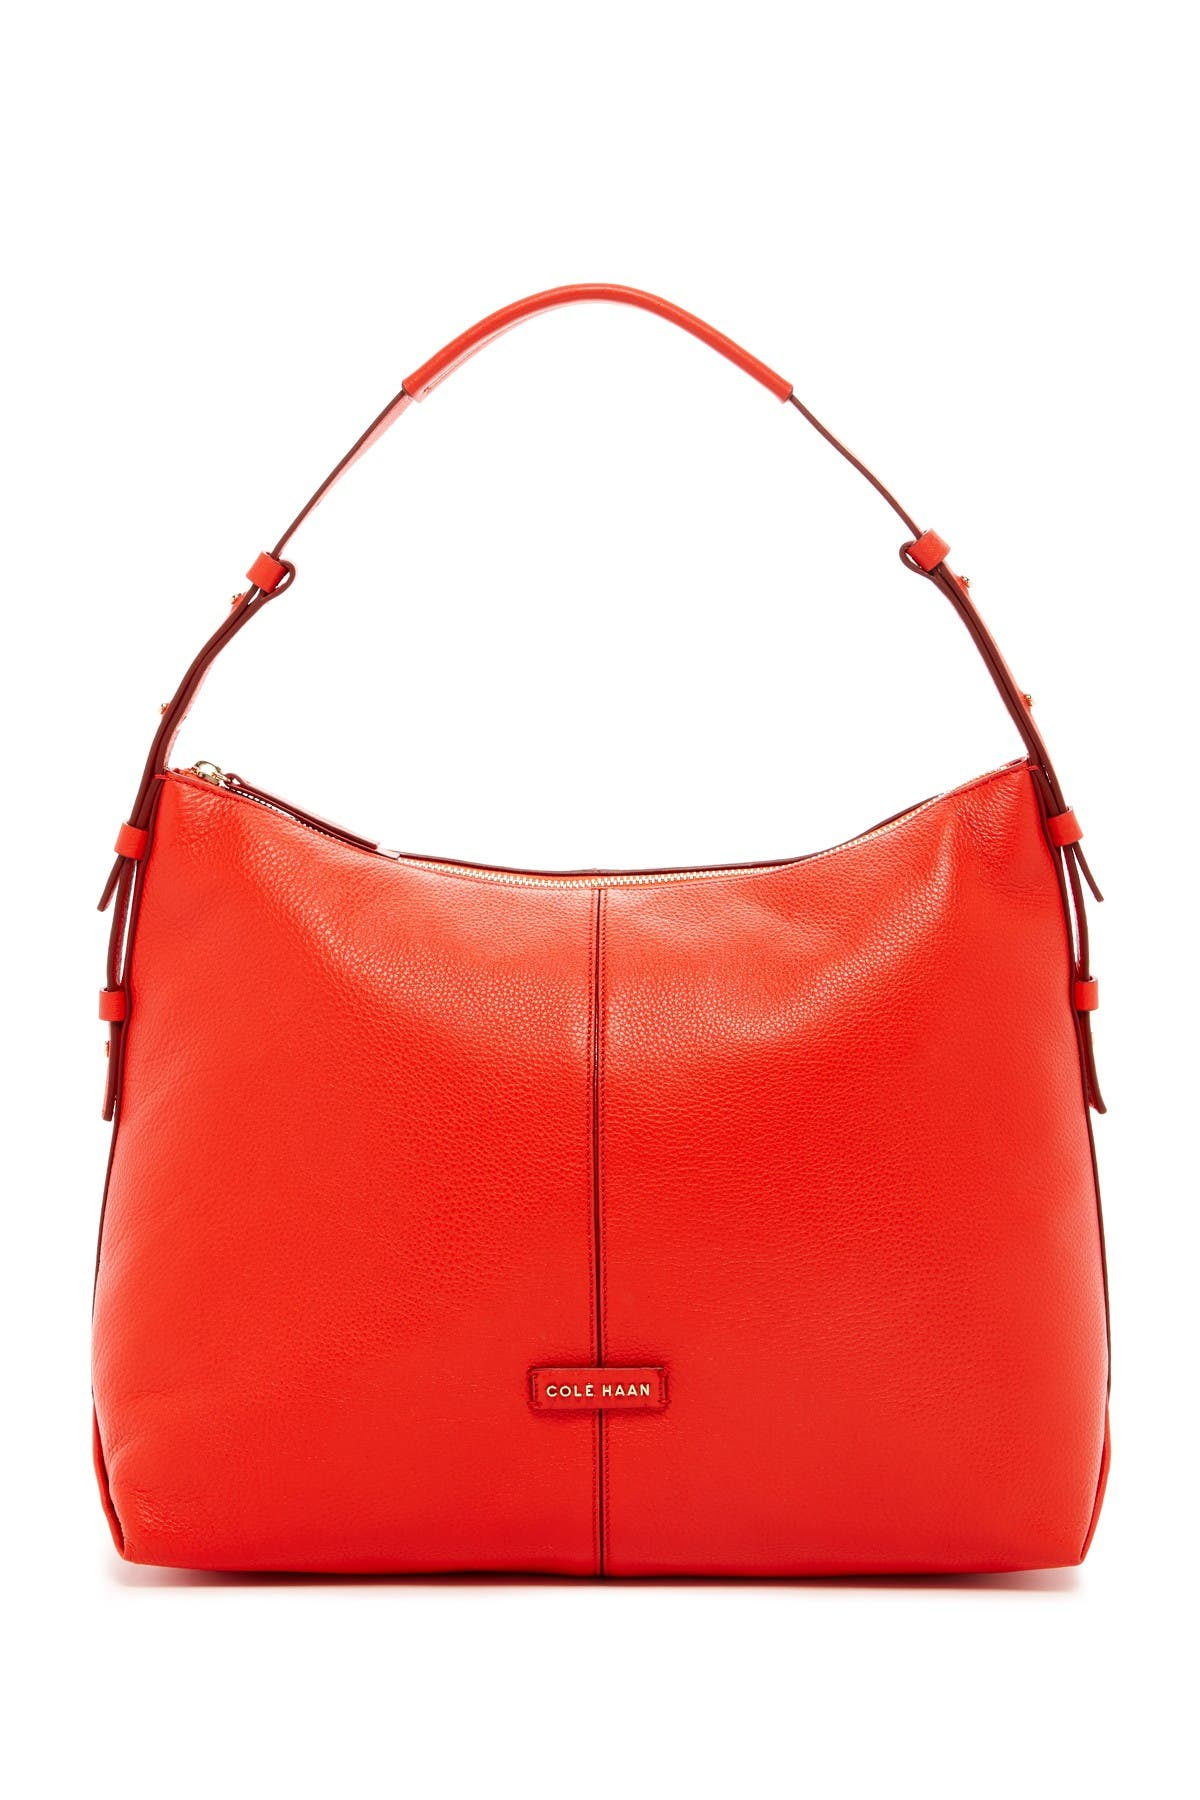 Image of Cole Haan Emma Leather Hobo Bag